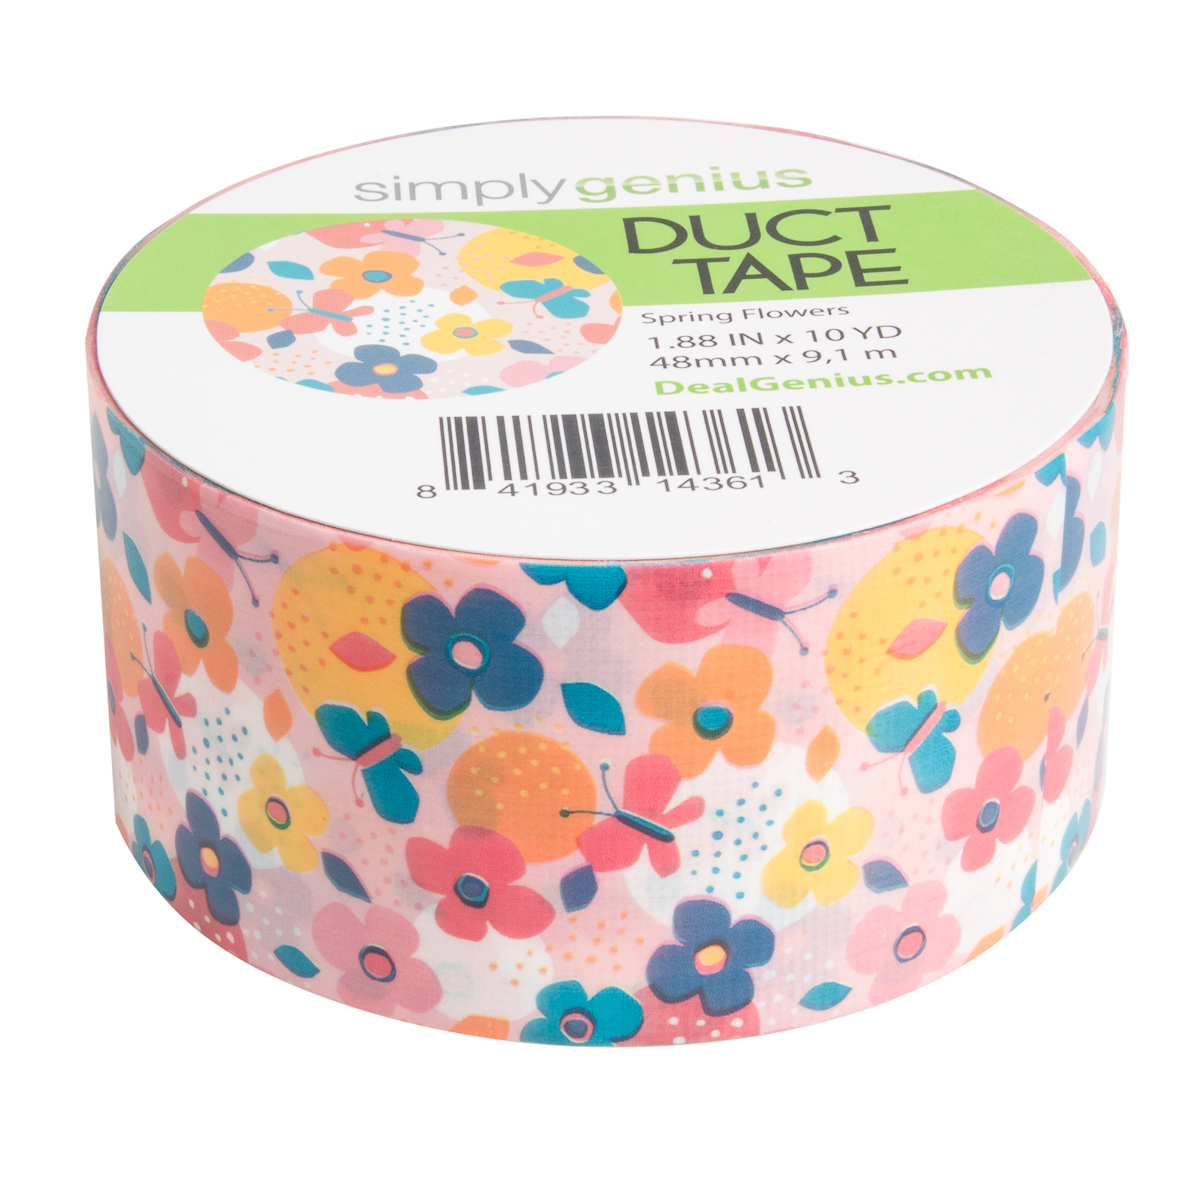 Simply-Genius-Duct-Tape-Roll-Colors-Patterns-Craft-Supplies-Colored-amp-Patterned thumbnail 205